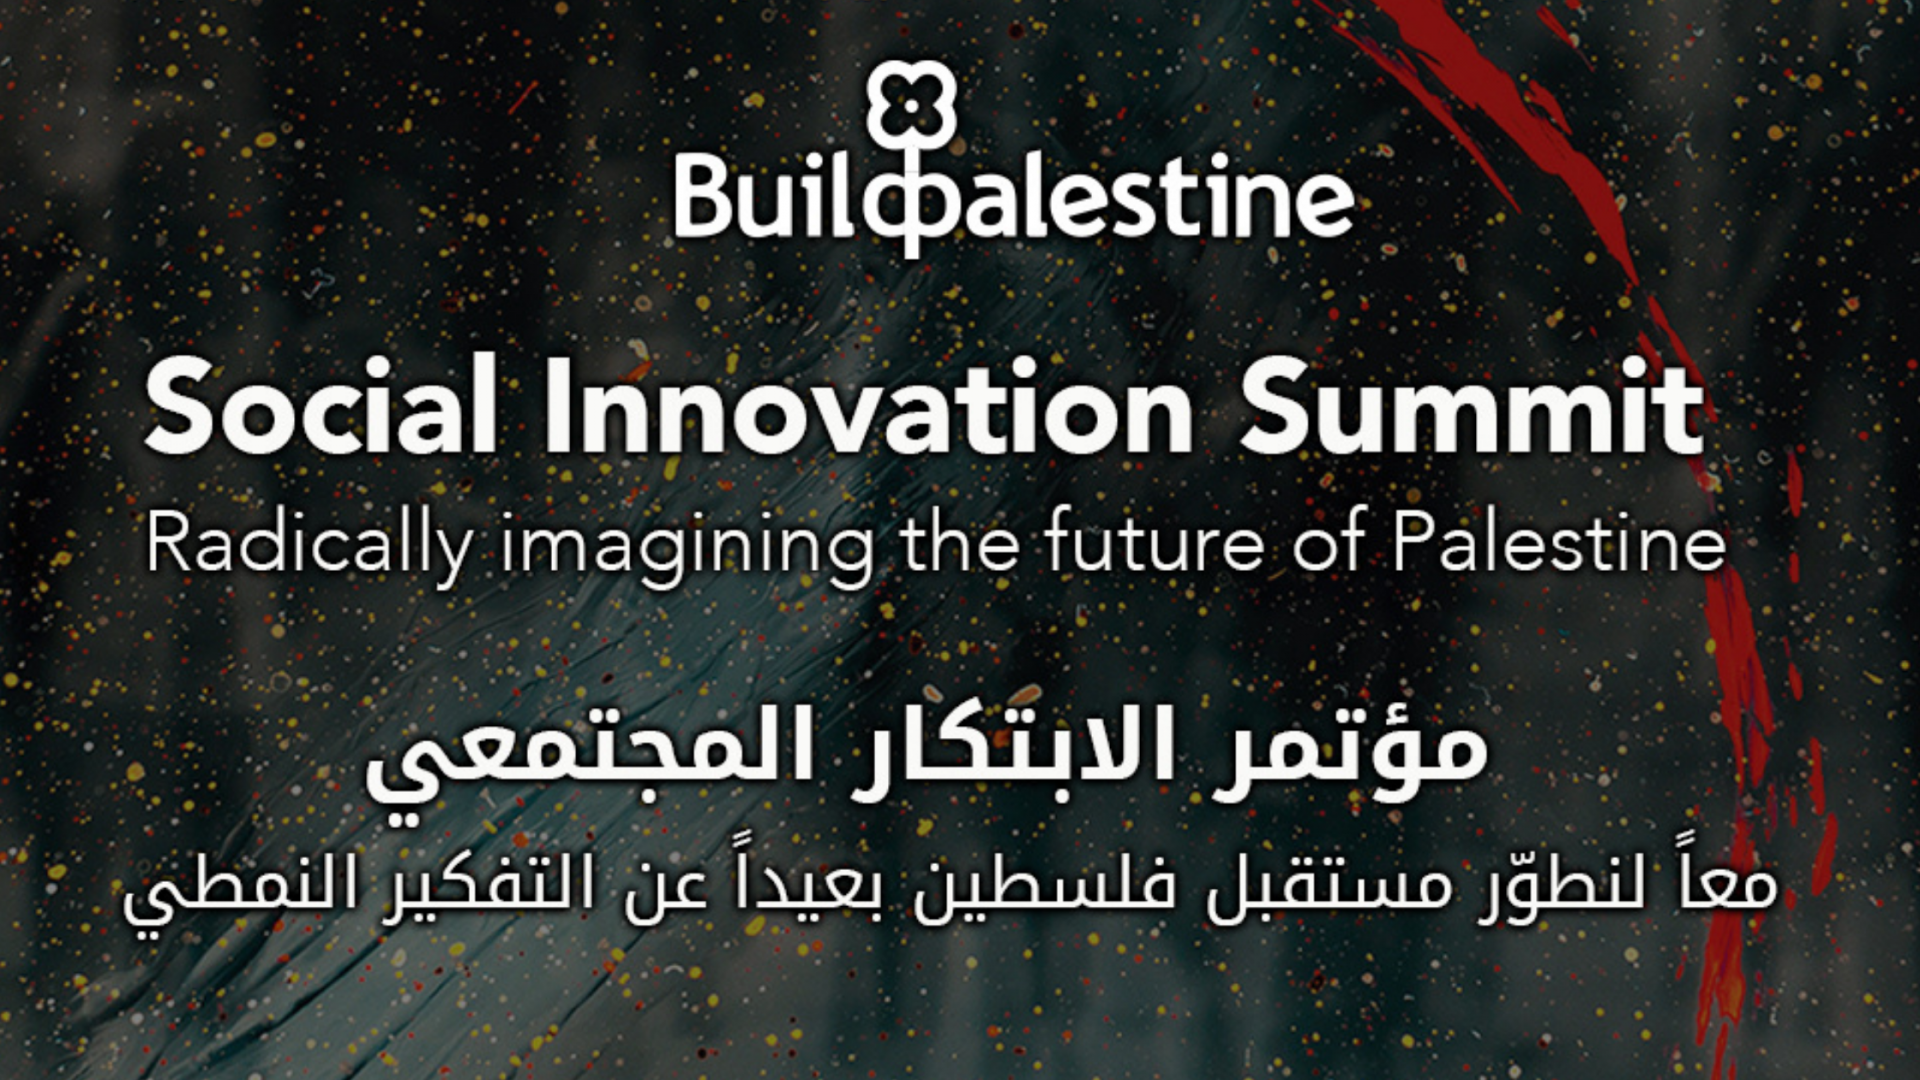 Palestinians and allies from around the world come together to radically imagine the future of Palestine